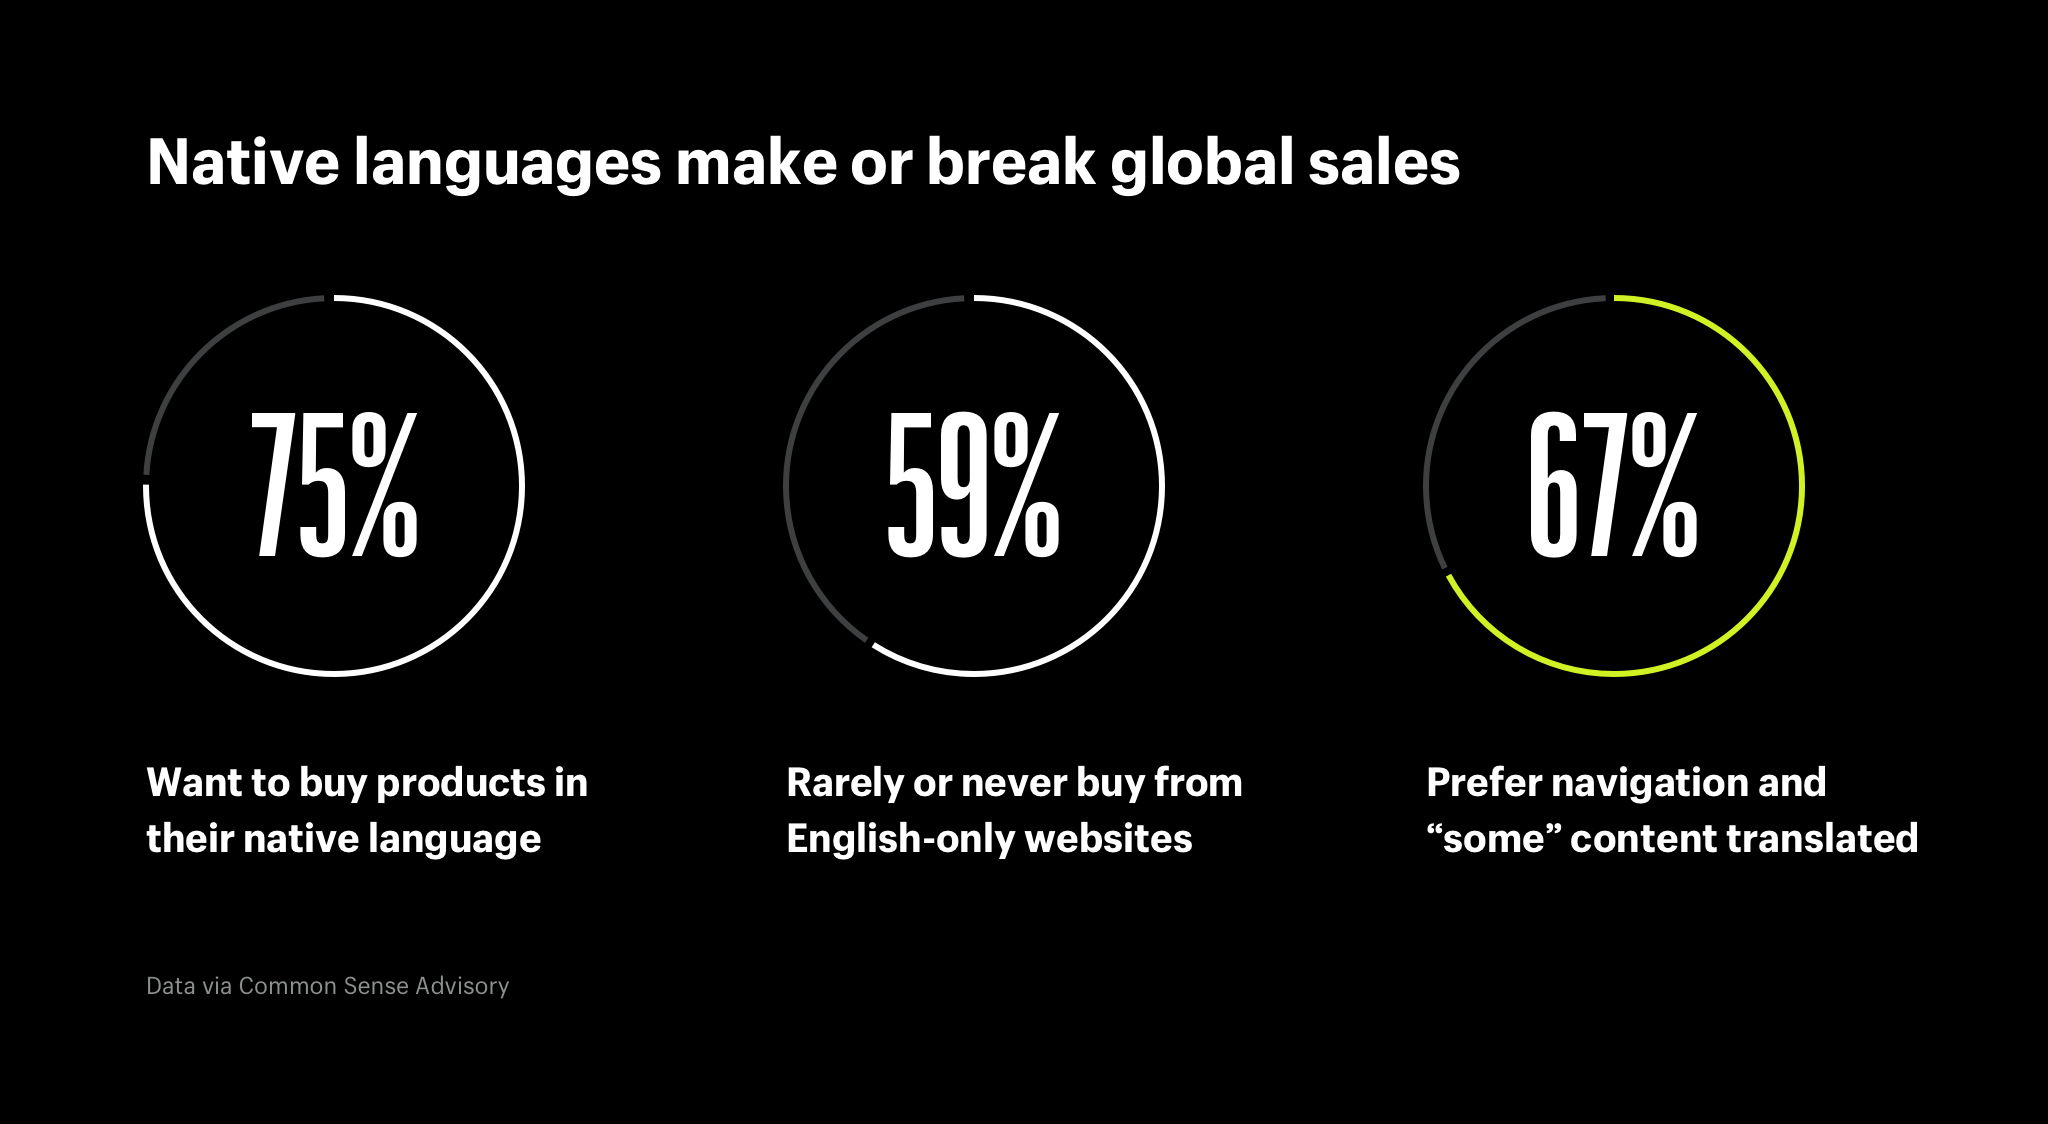 Native languages make or break global sales